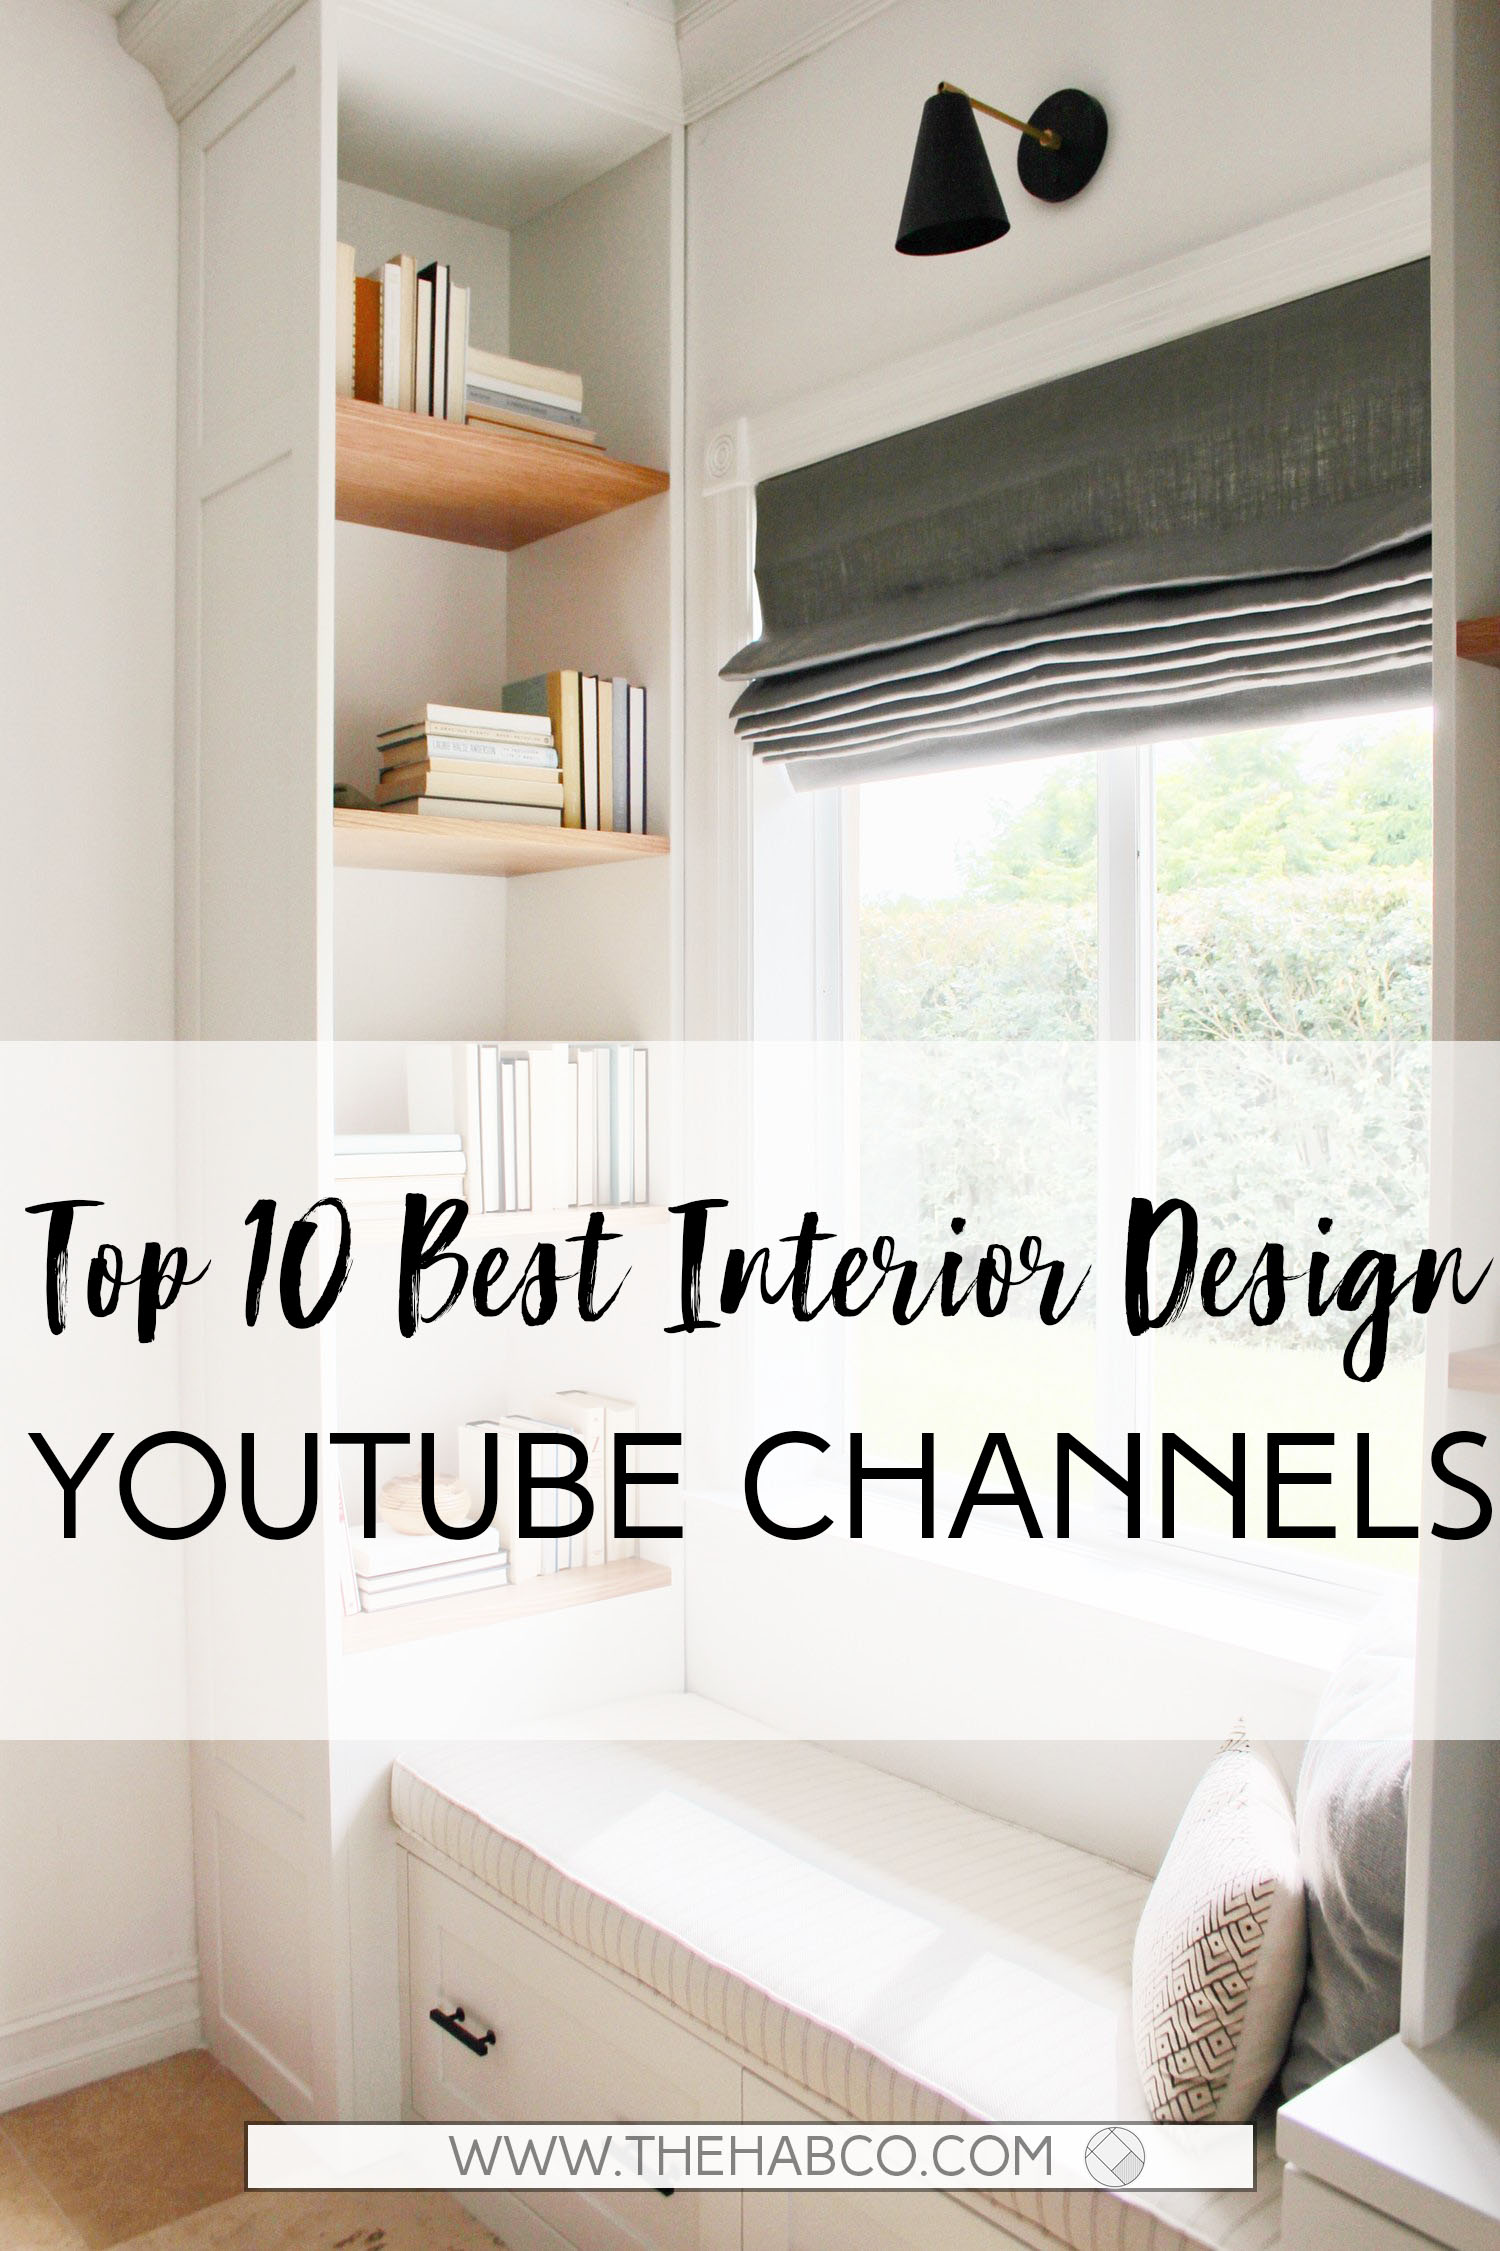 Top 10 Best Interior Design Youtube Channels The Habitat Collective Miami Residential Interior Design Firm